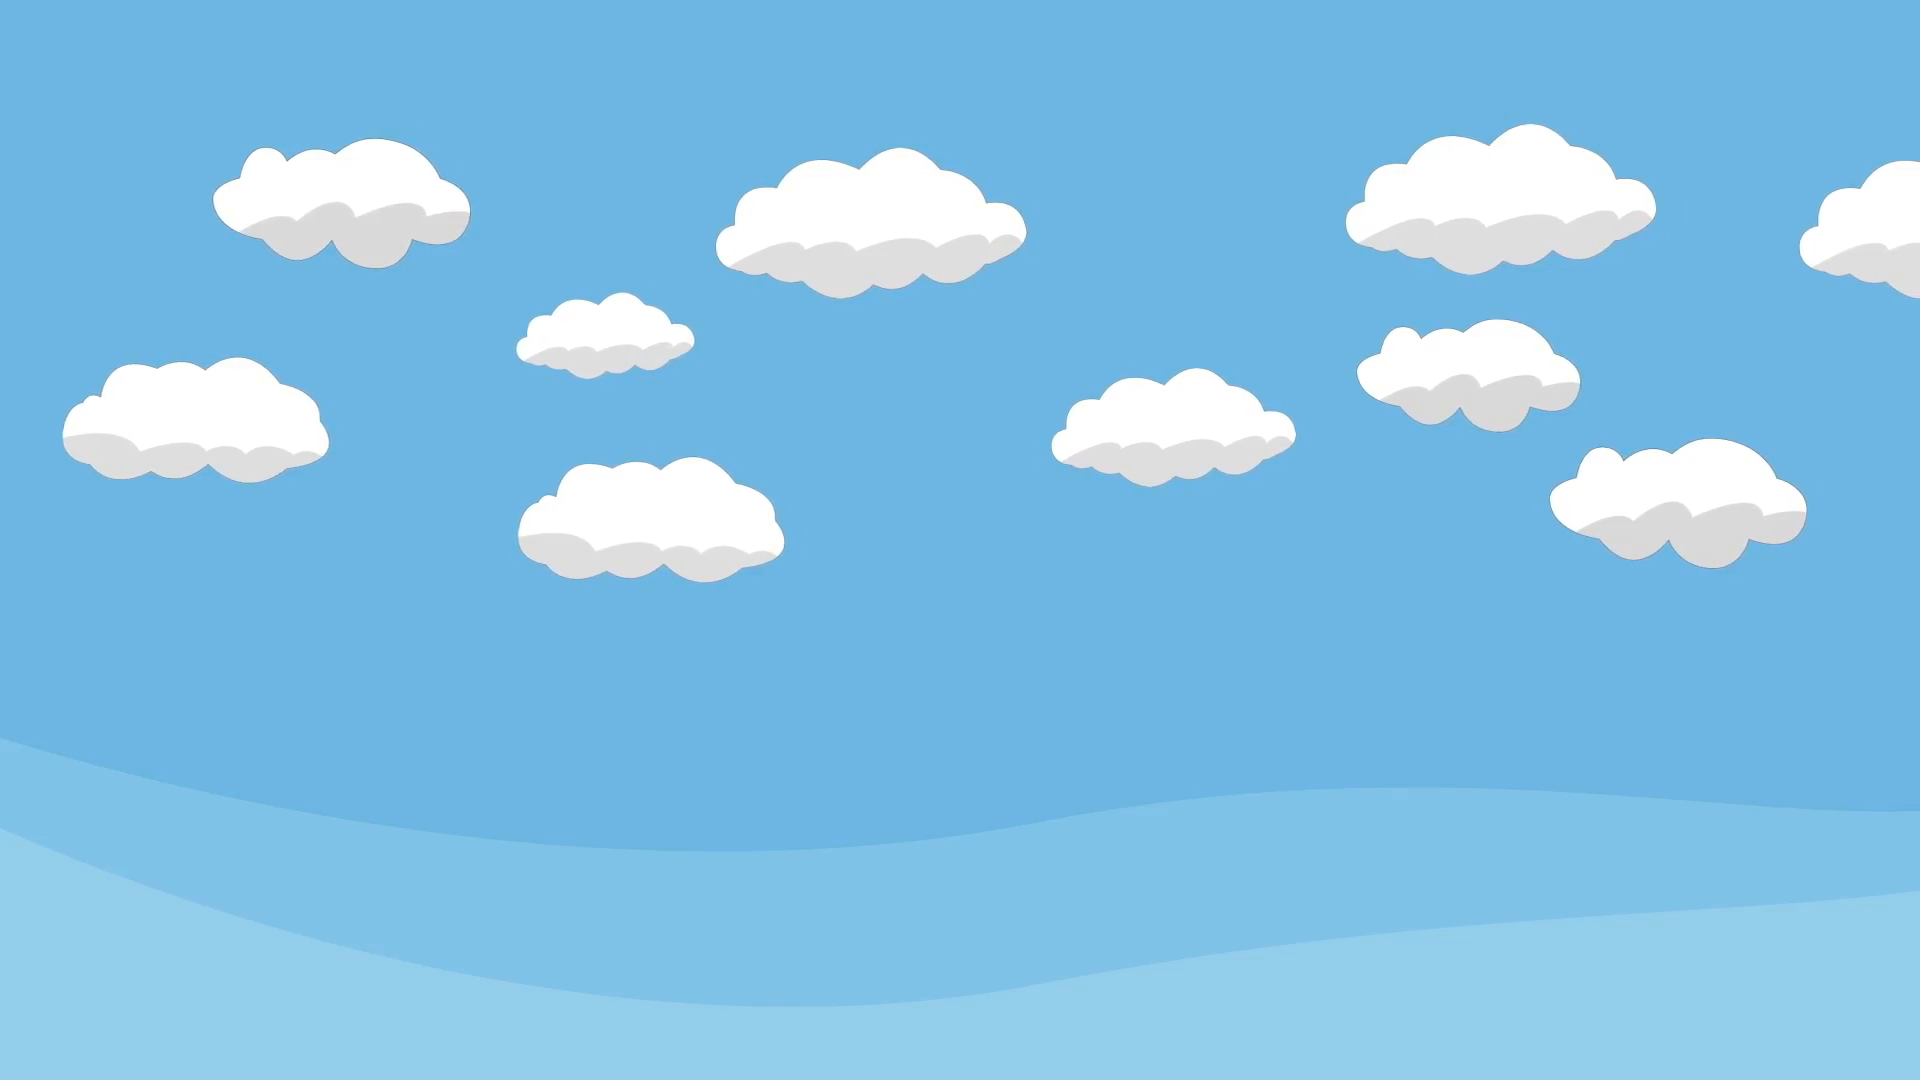 Clouds animated png 6 » PNG Image.